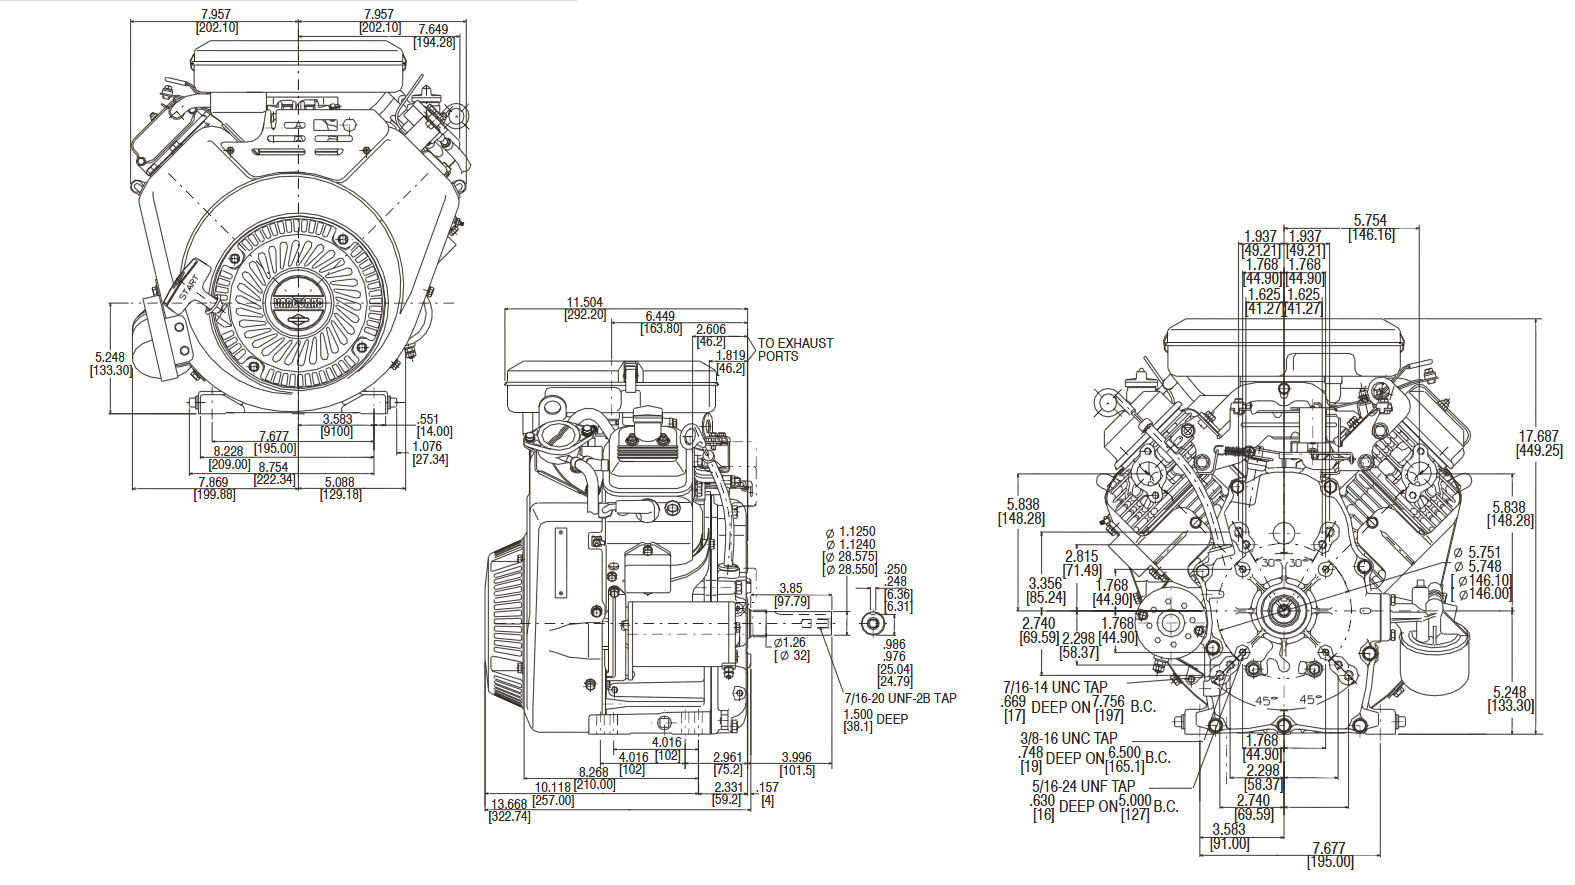 Craftsman 18 Hp Lawn Tractor Wiring Diagram Solutions Picturesque - Briggs And Stratton V-Twin Wiring Diagram